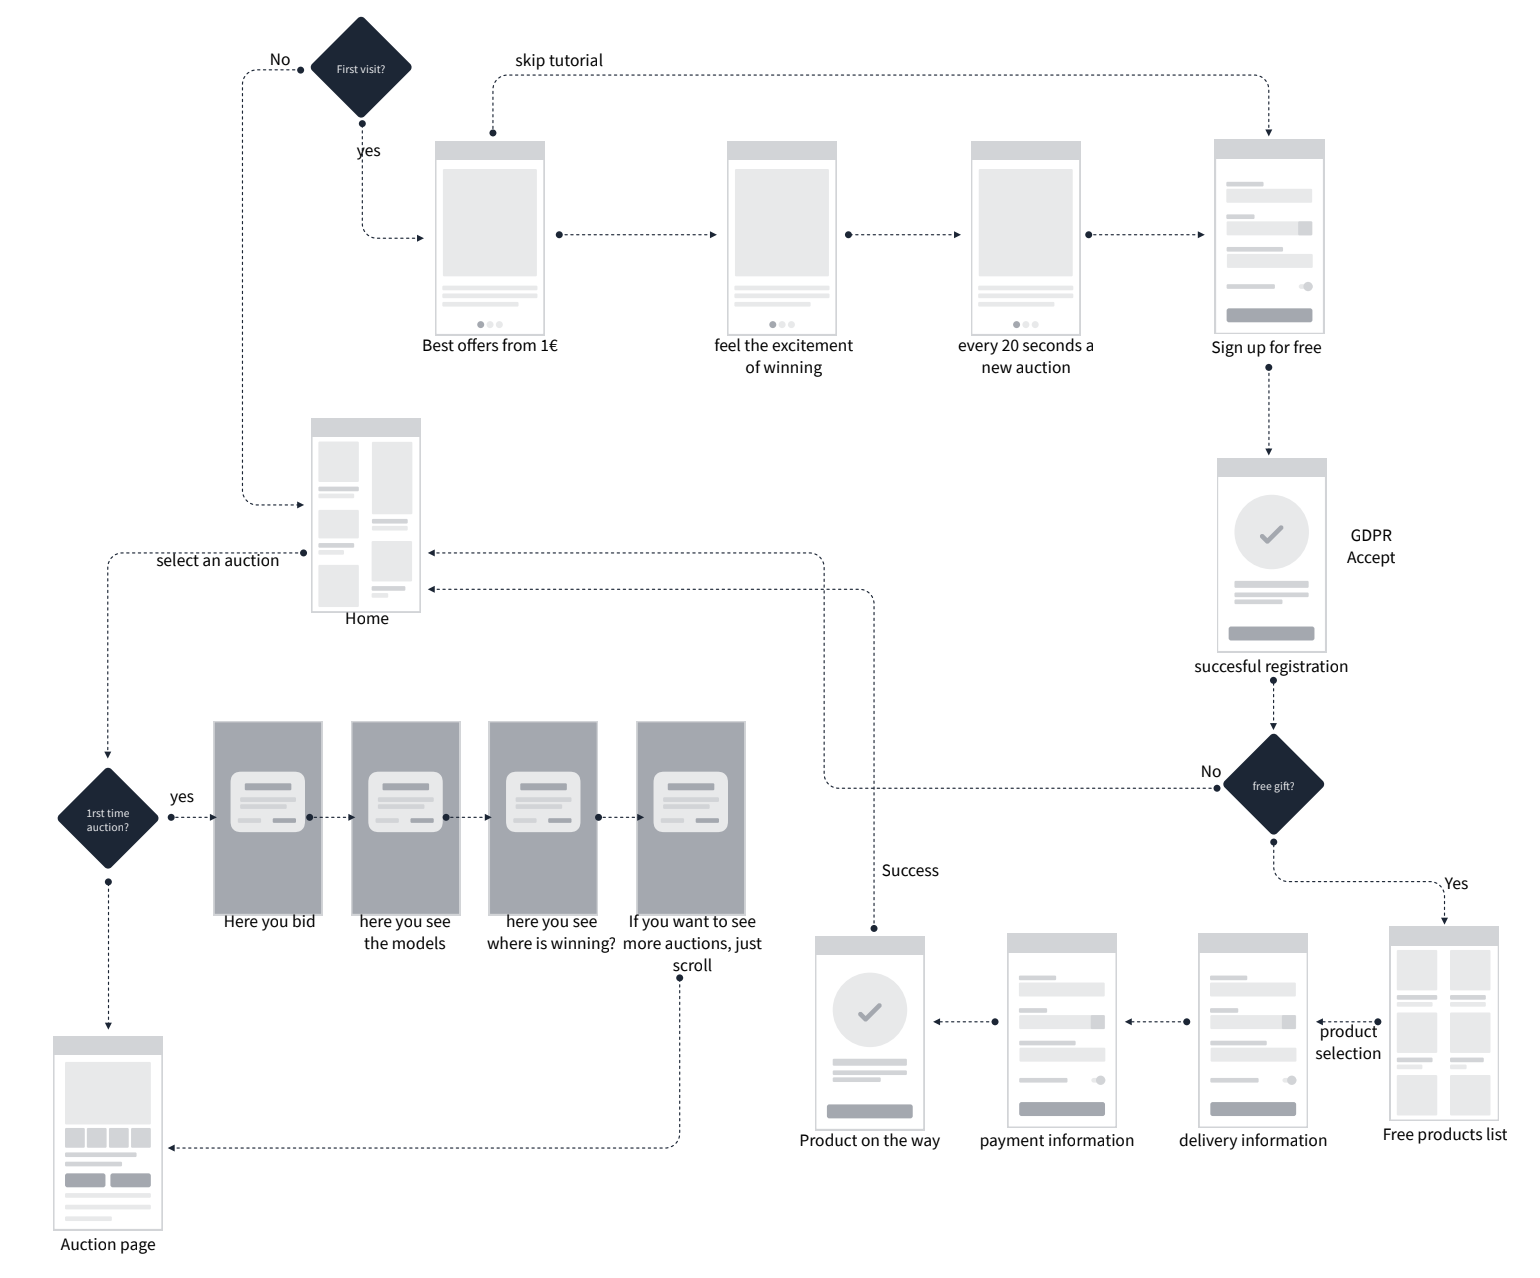 First time user experience flow.